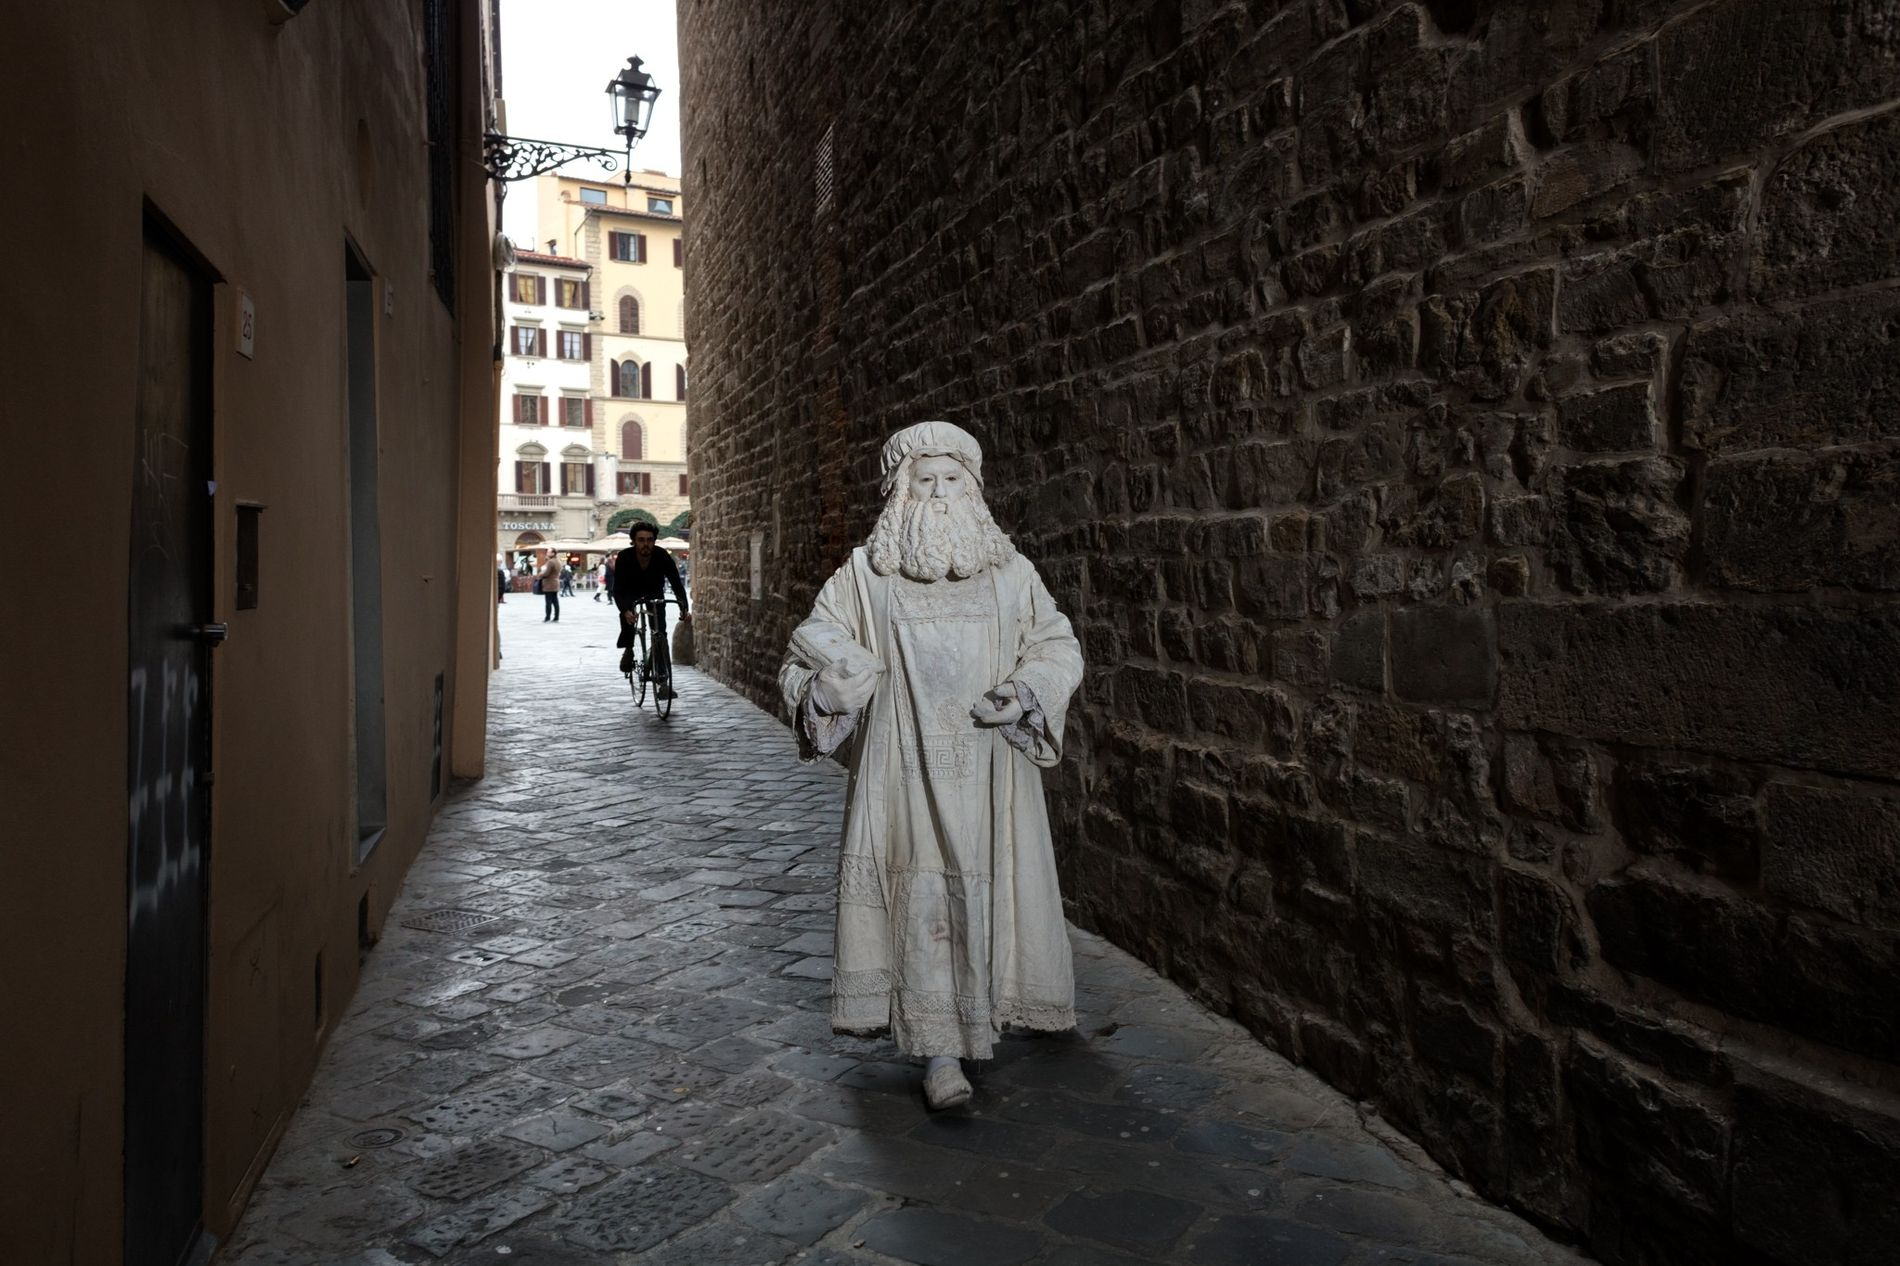 Valter Conti, strolling through one of Florence's narrow alleyways, began posing as Leonardo da Vinci in 1990. He enjoys the silent anonymity of working as an impersonator.